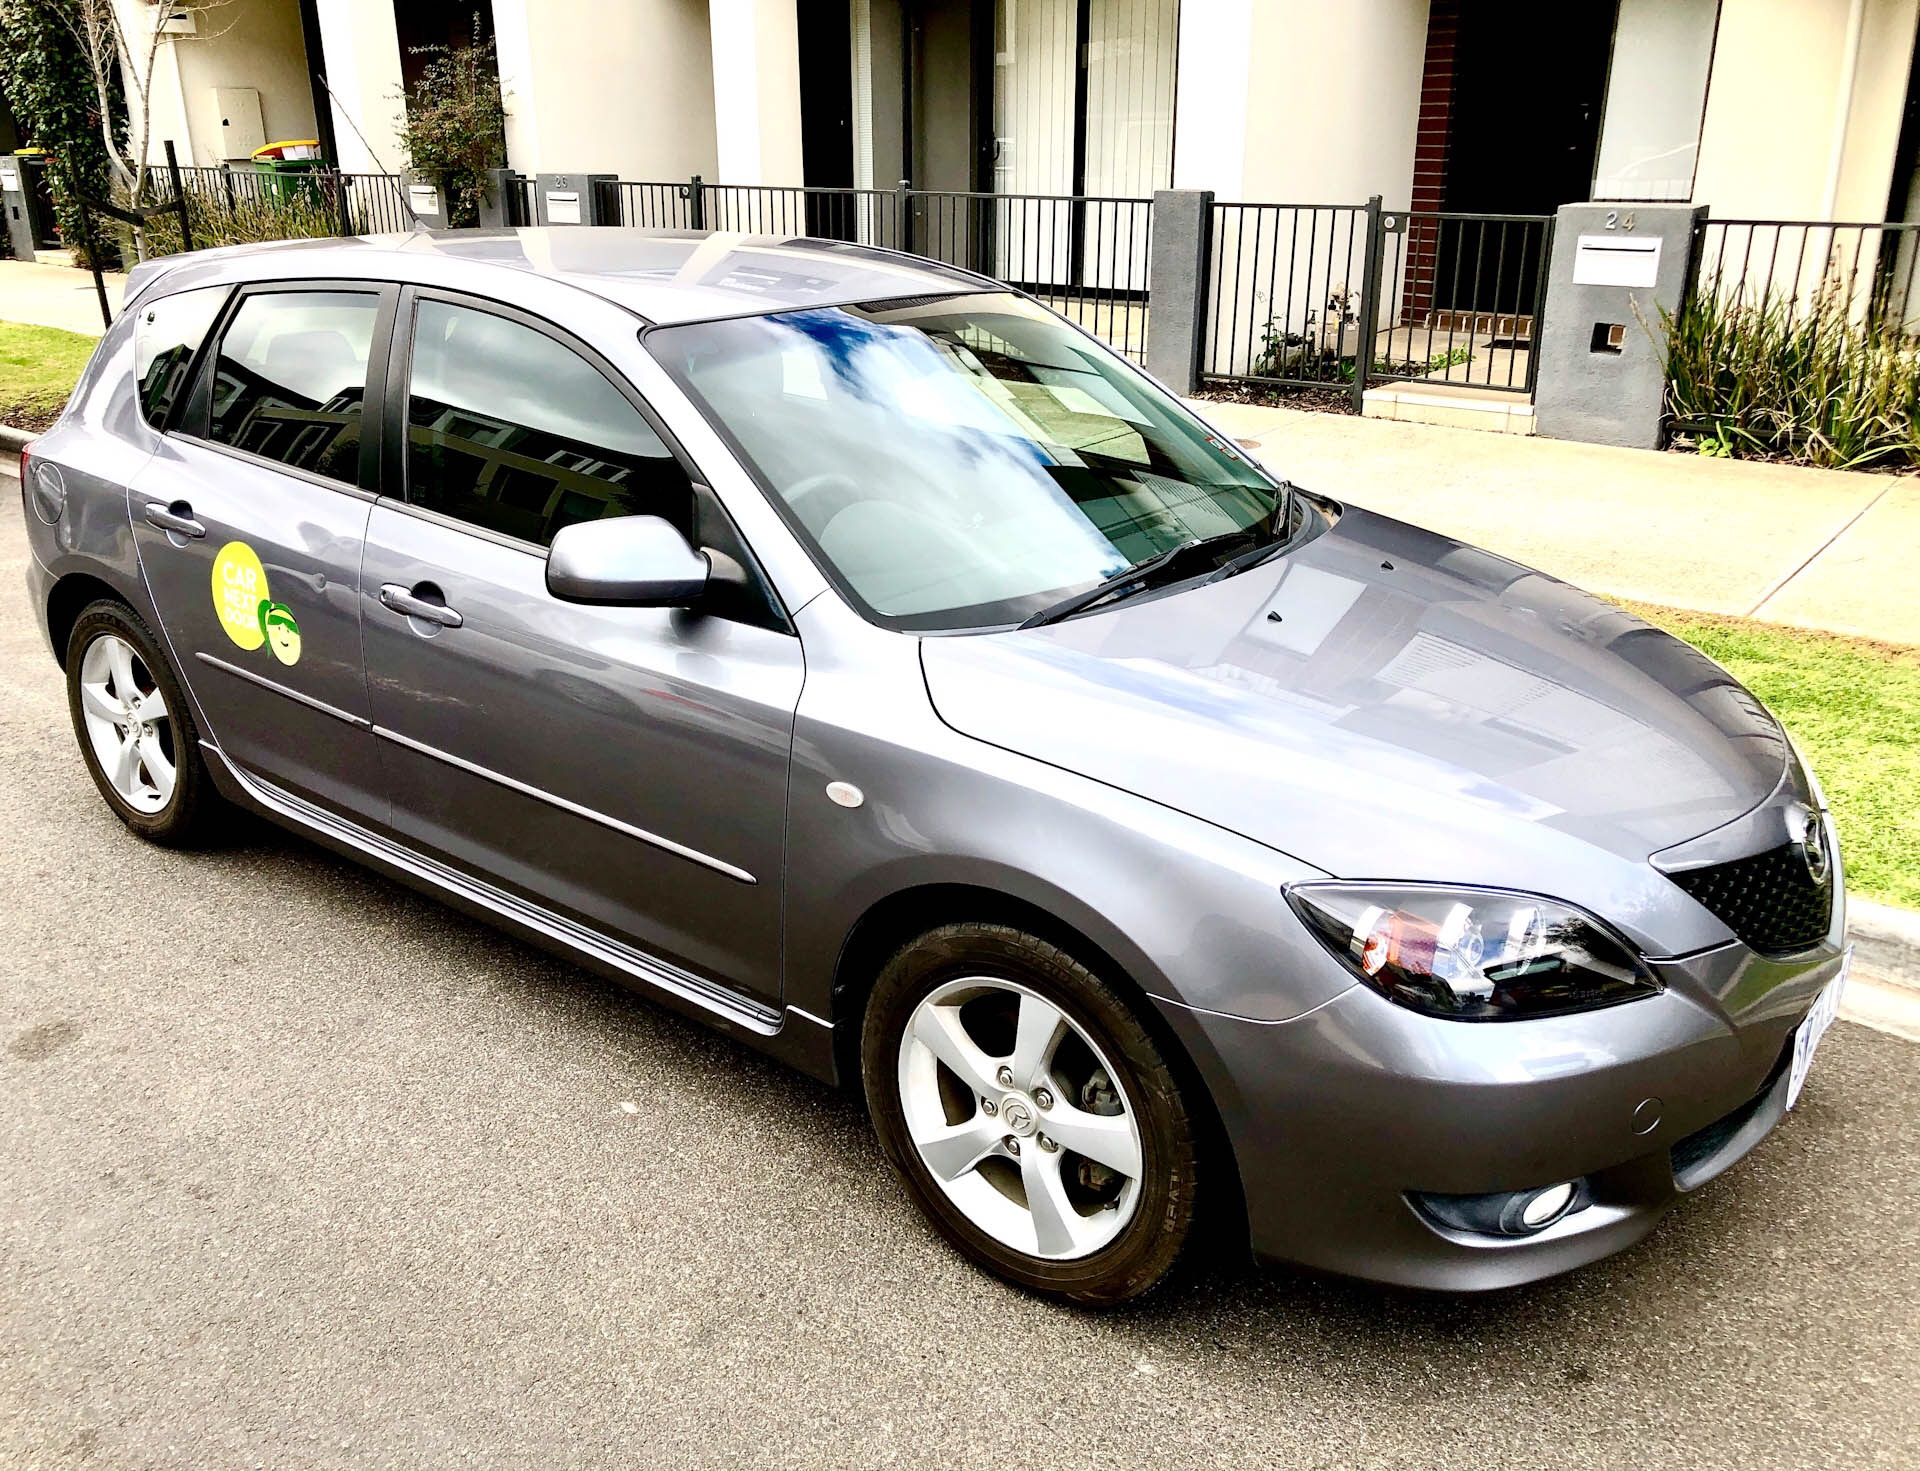 Picture of Mere's 2004 Mazda 3